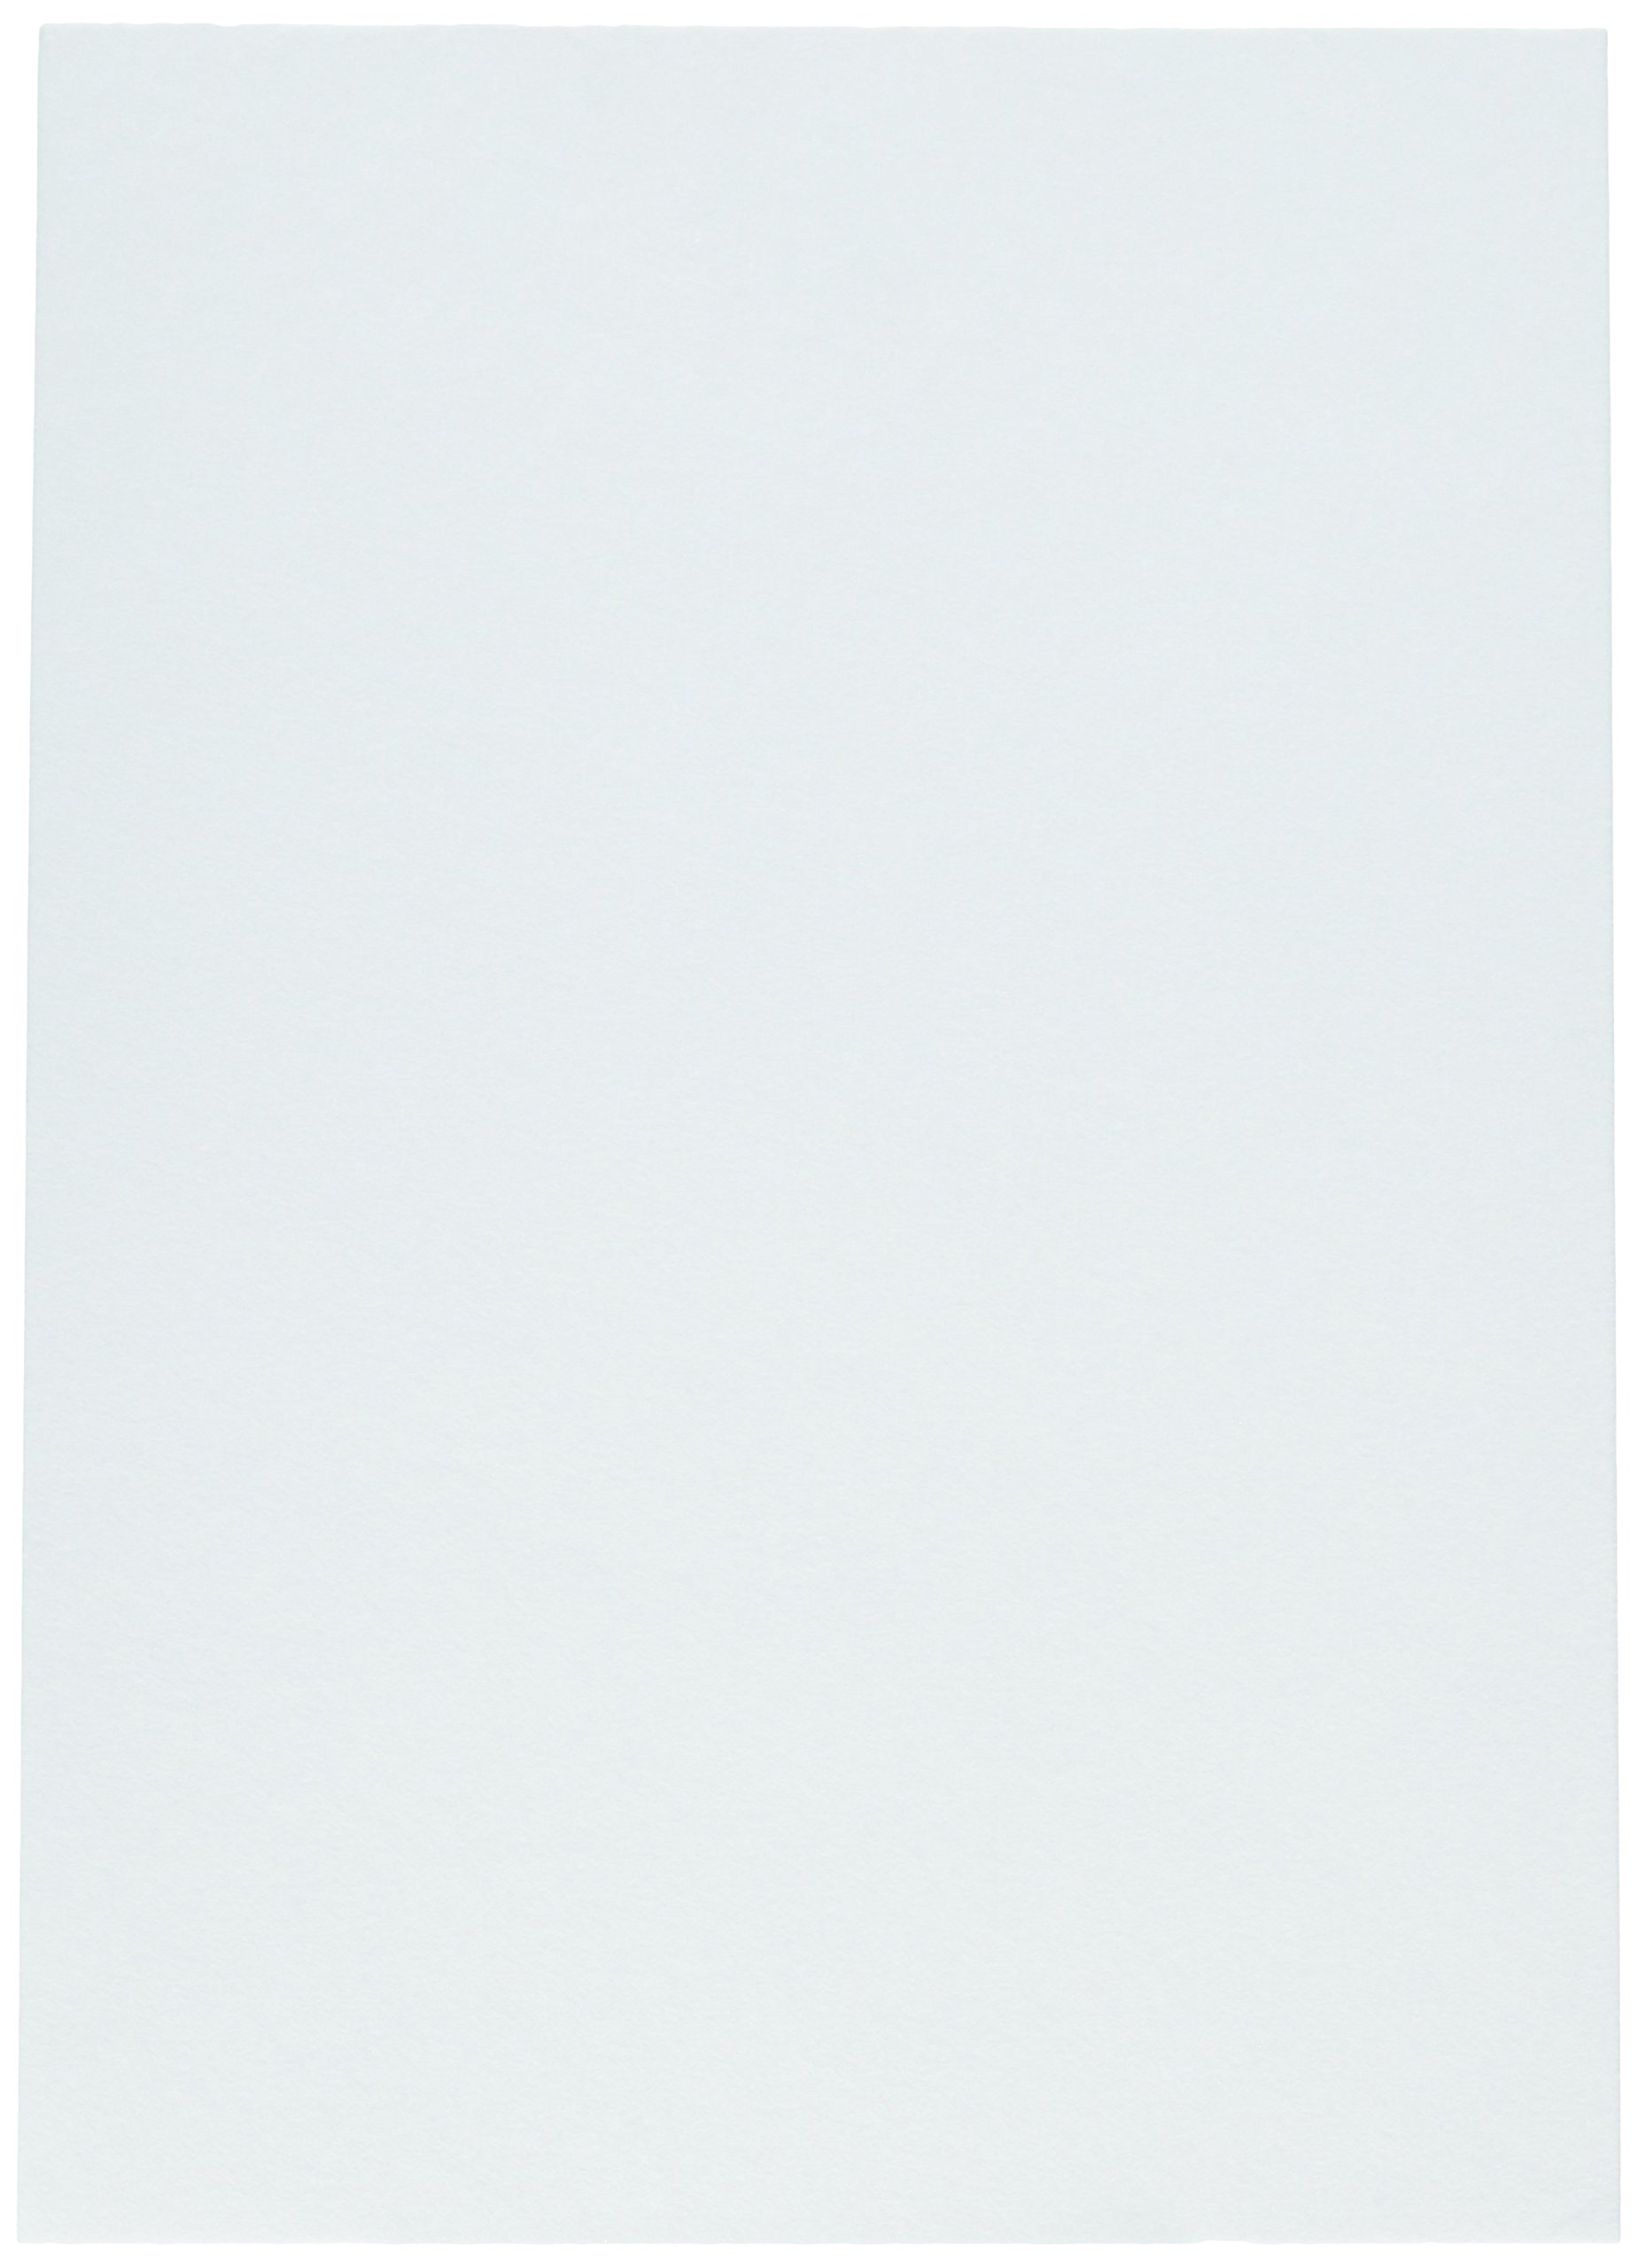 Fujitsu CA99501-0012 Cleaning Paper 10-pack for All Fujitsu M and fi Series Scanners